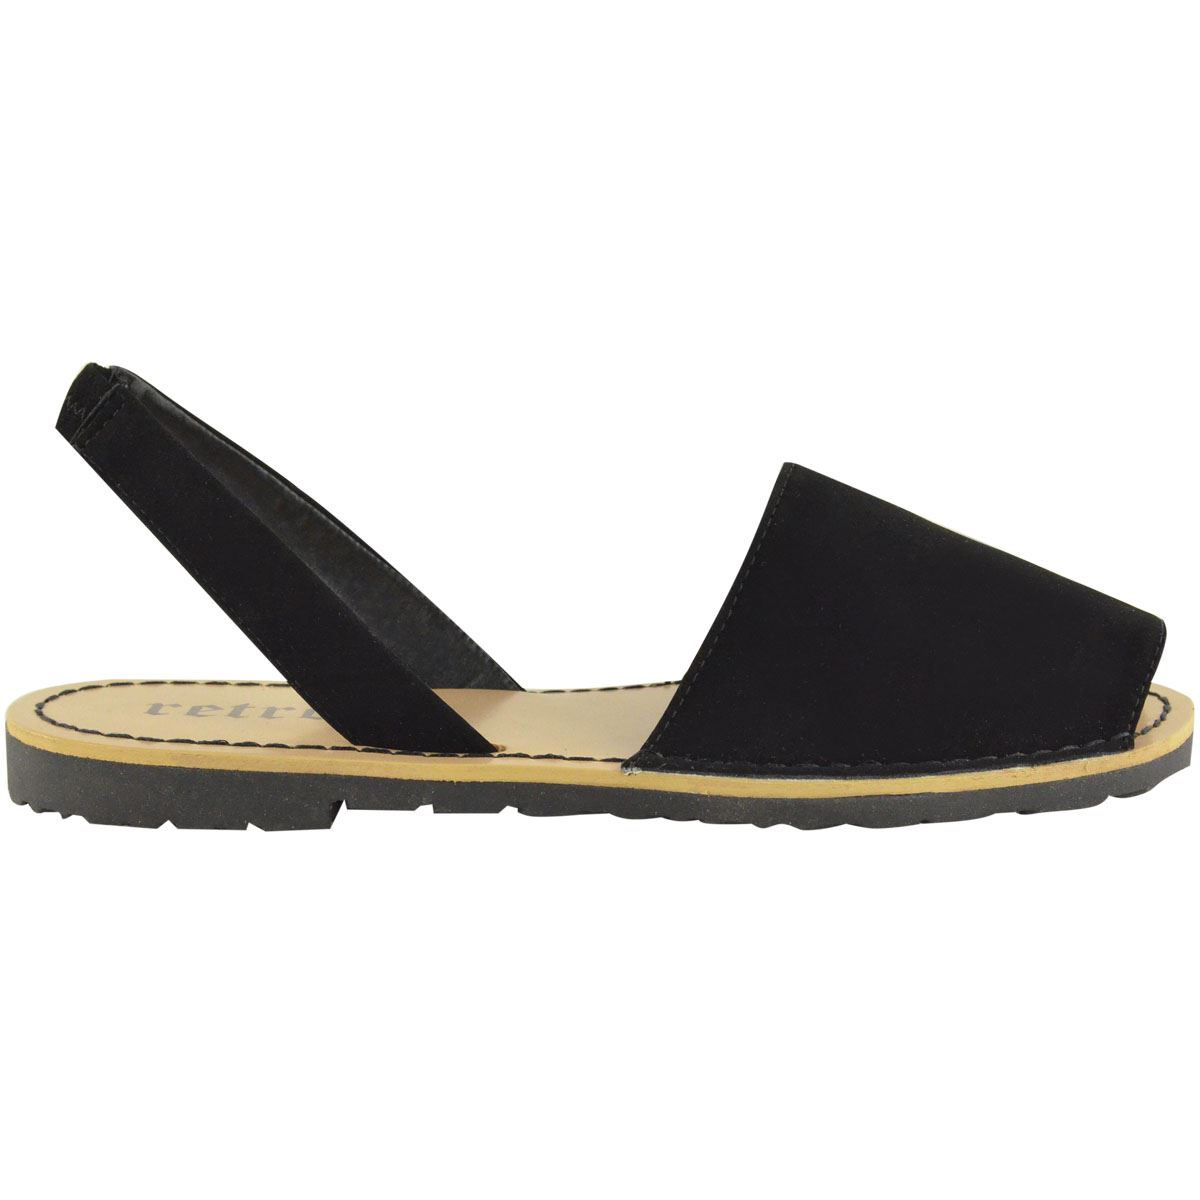 Innovative Gucci Womenu0026#39;s Sandals Black Patent Leather Shoes GG Logo Slides (GGW2603)